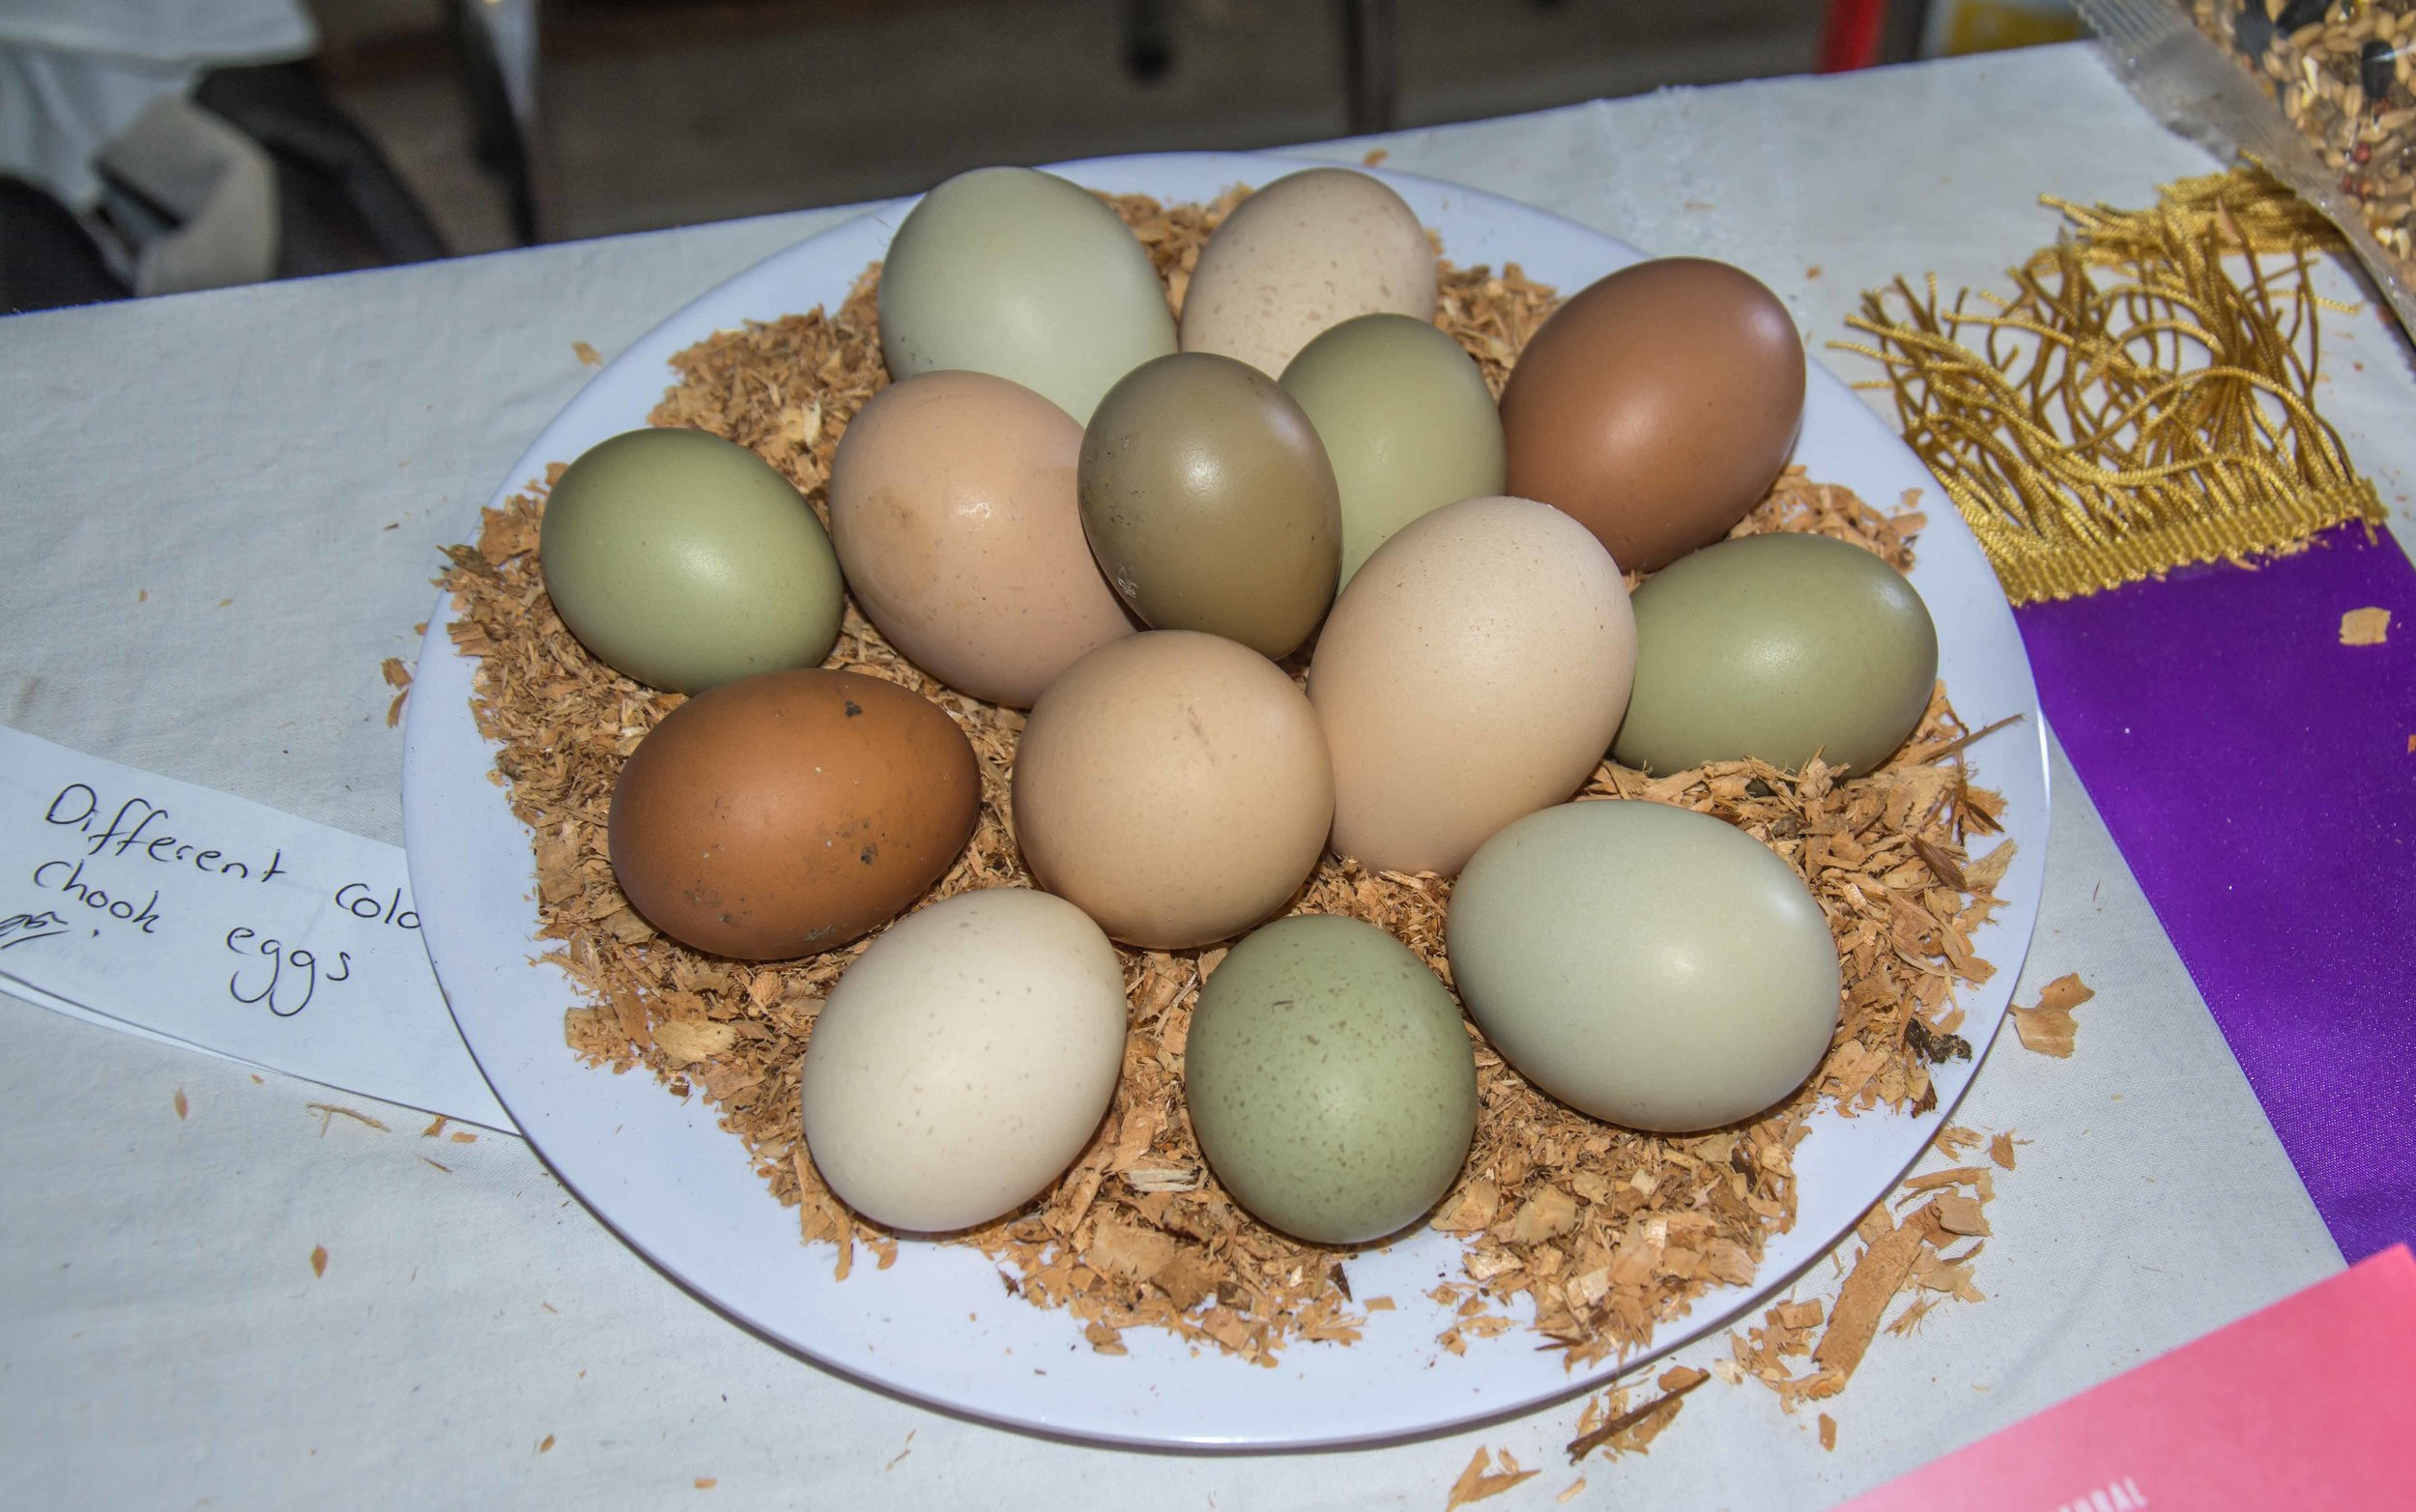 Many different coloured eggs on display